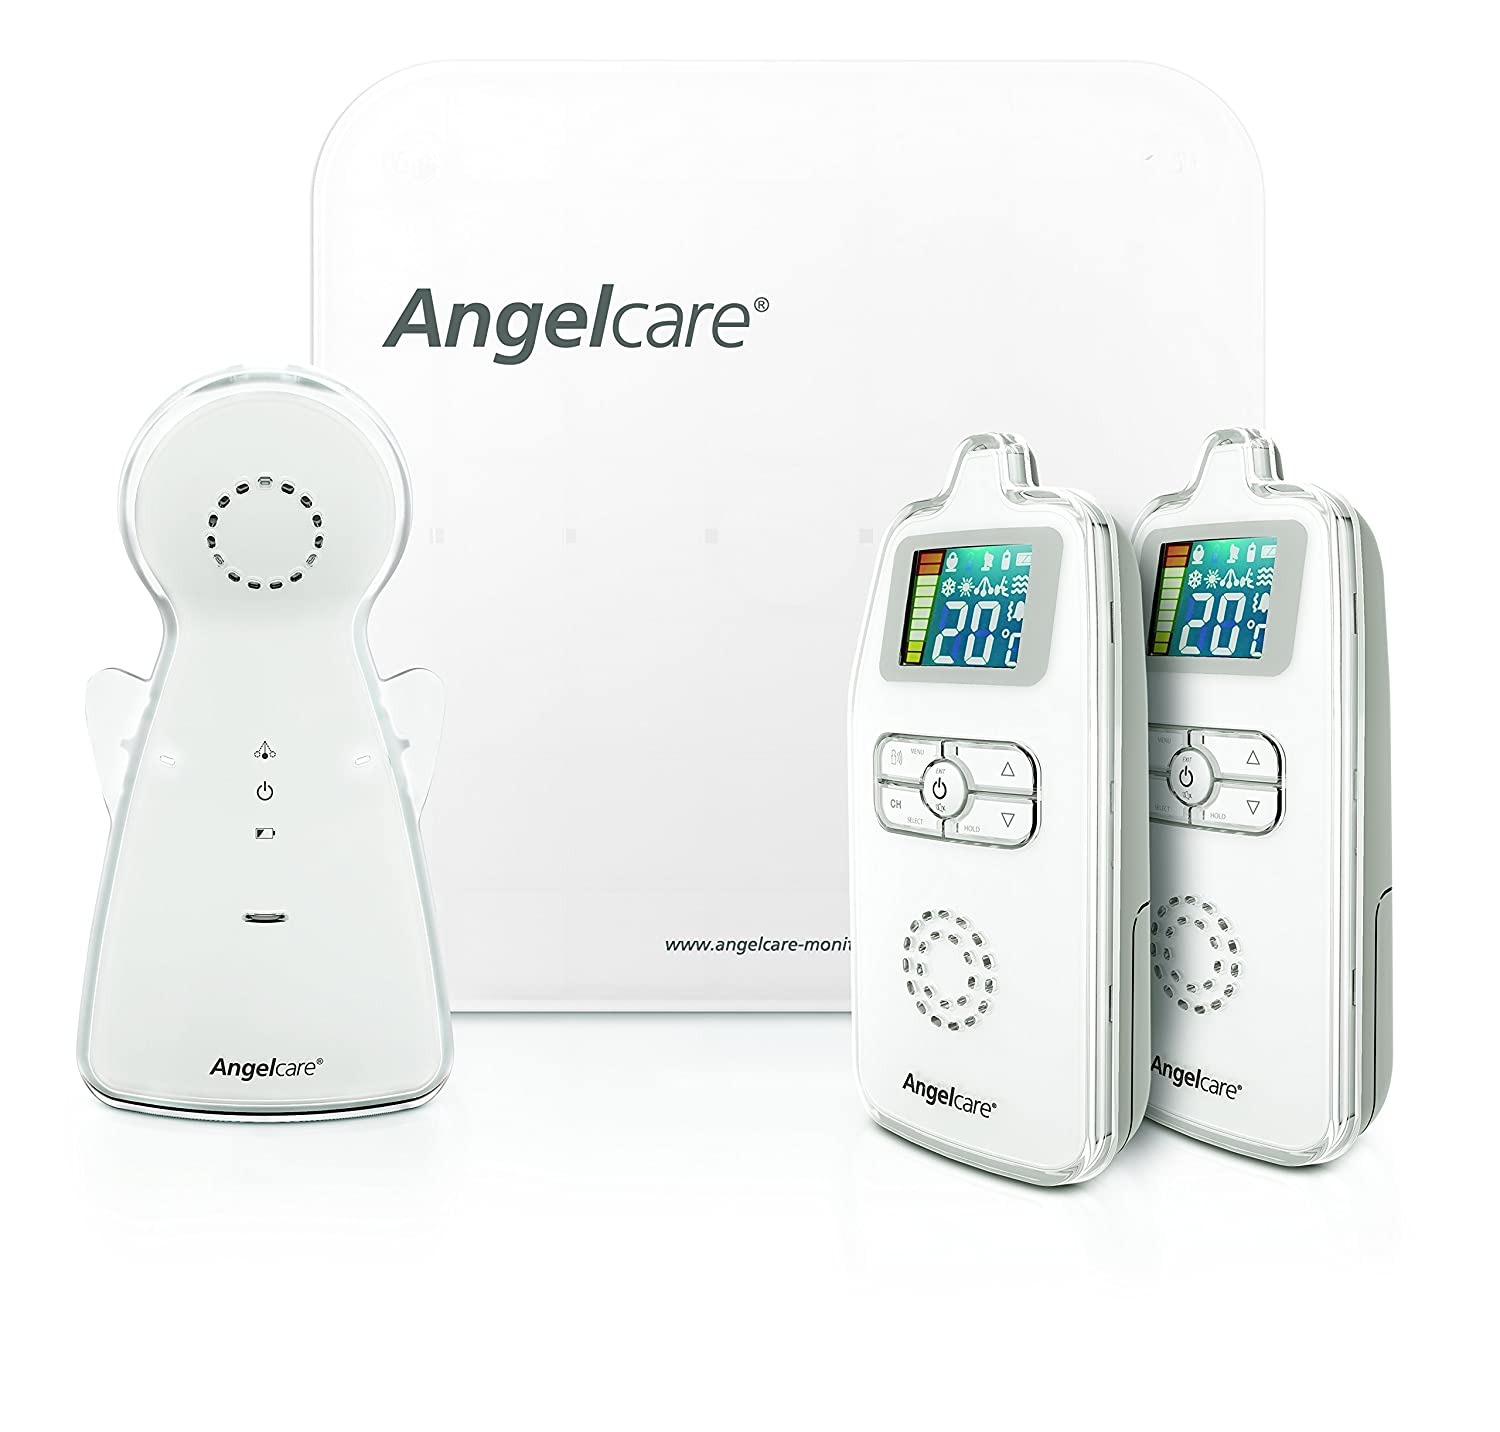 Angelcare AC403-2PU Movement and Sound Monitor for Baby-2 Parent Units, White